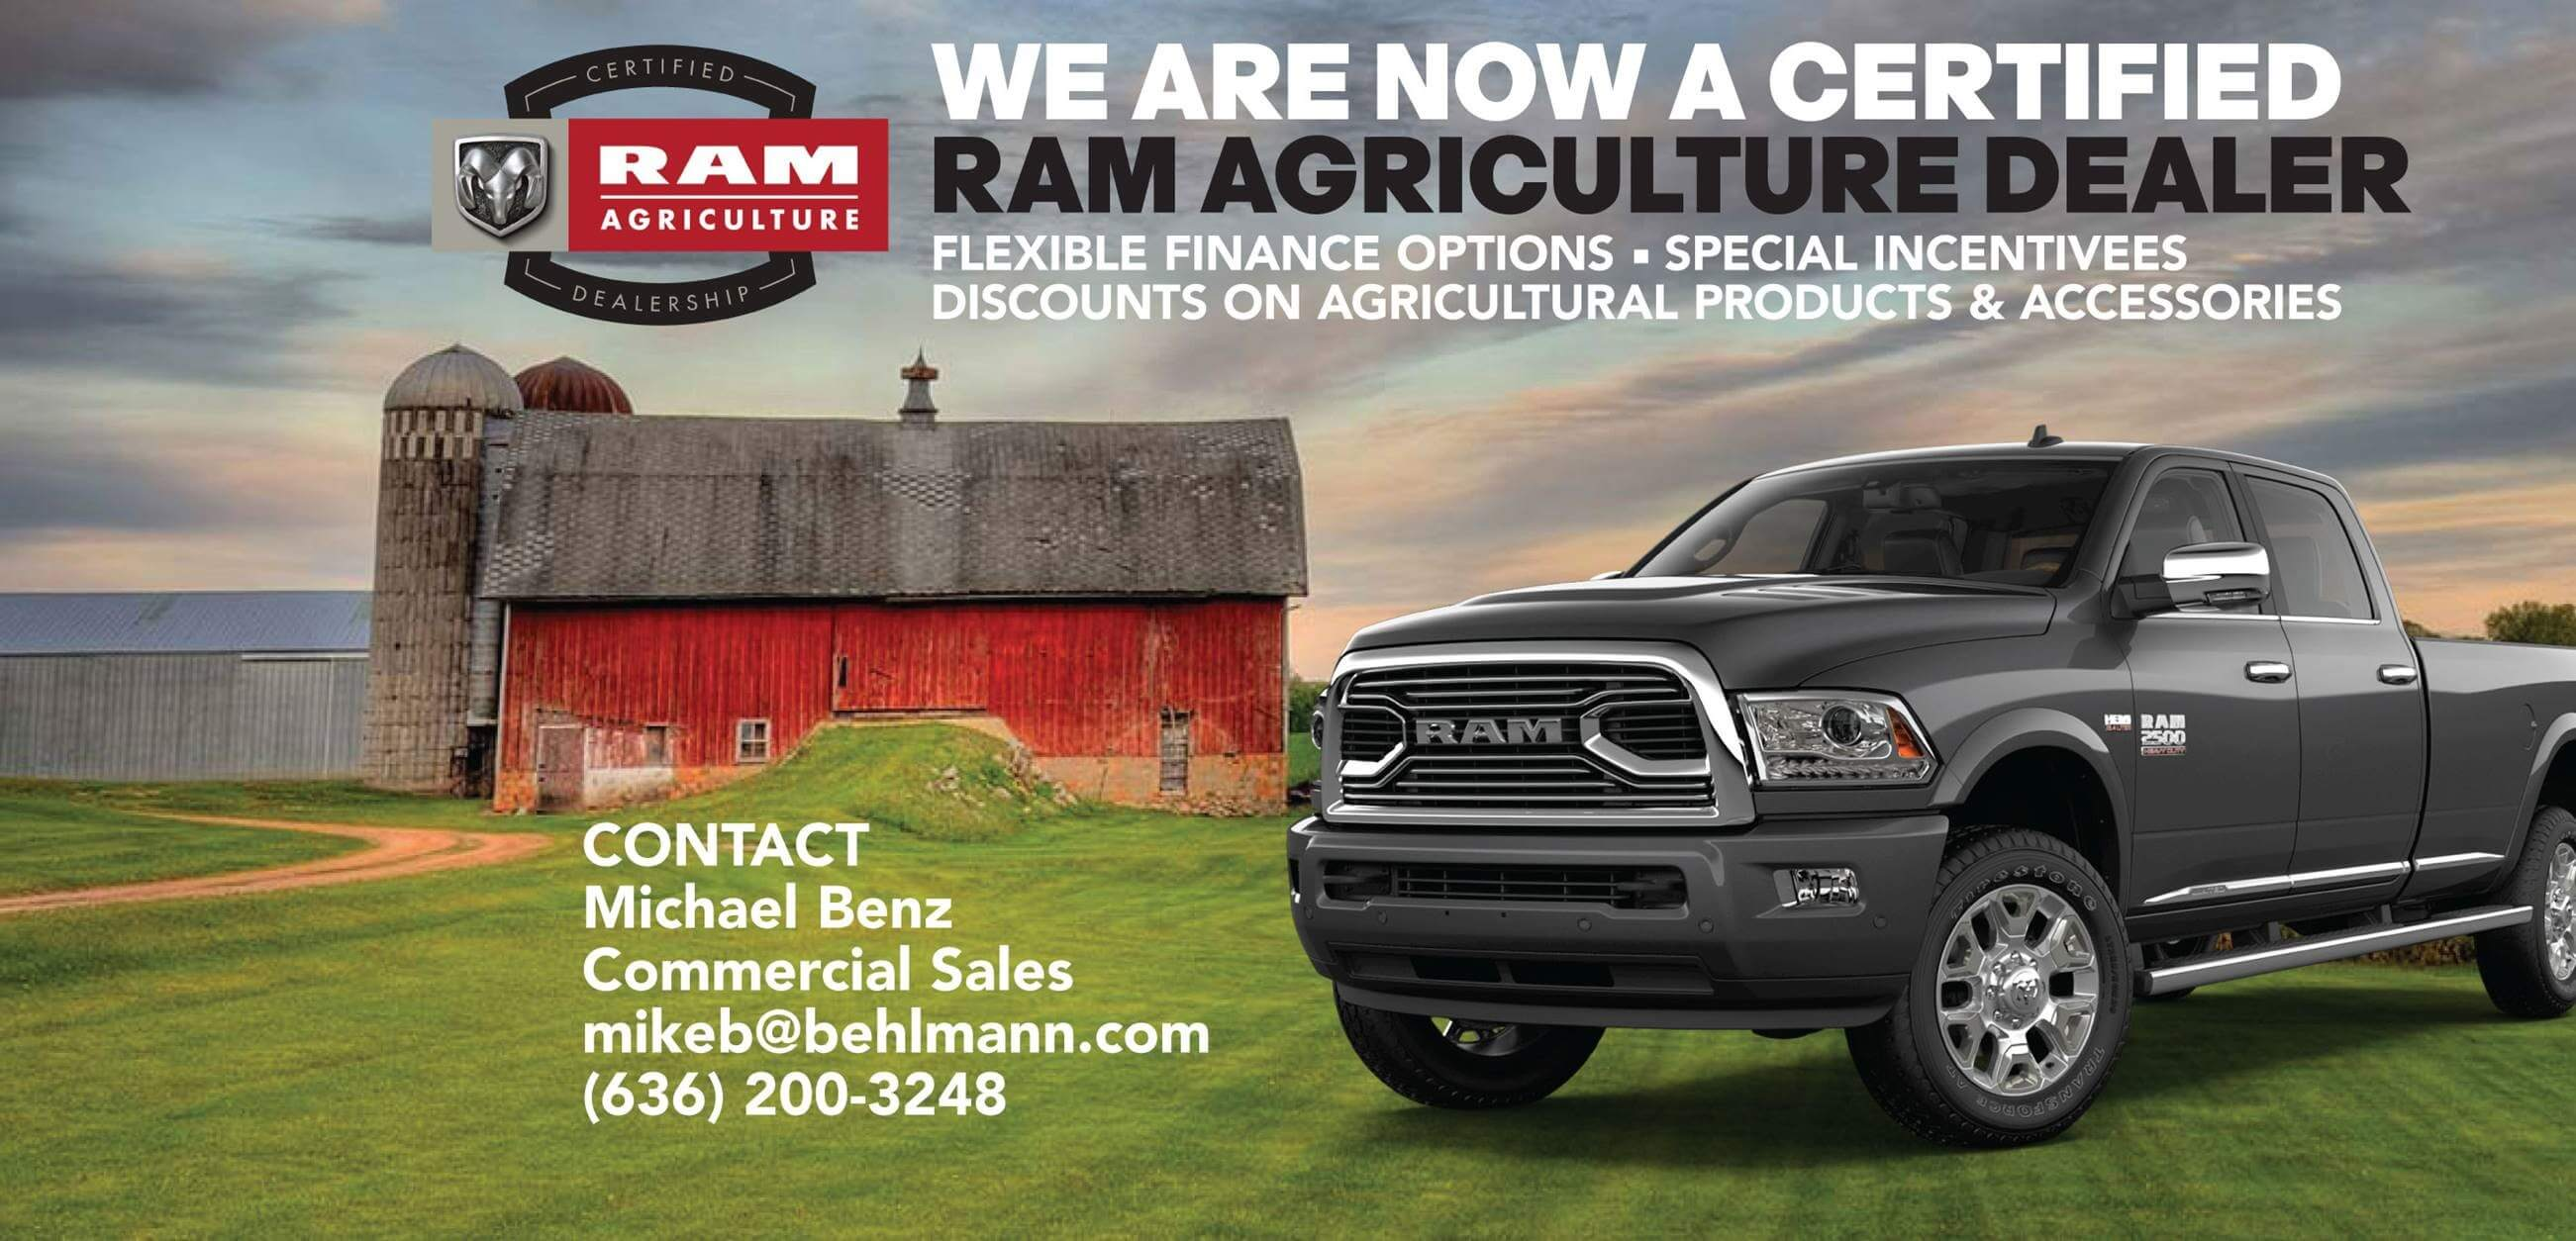 We are now a Ram Agricultural Dealer